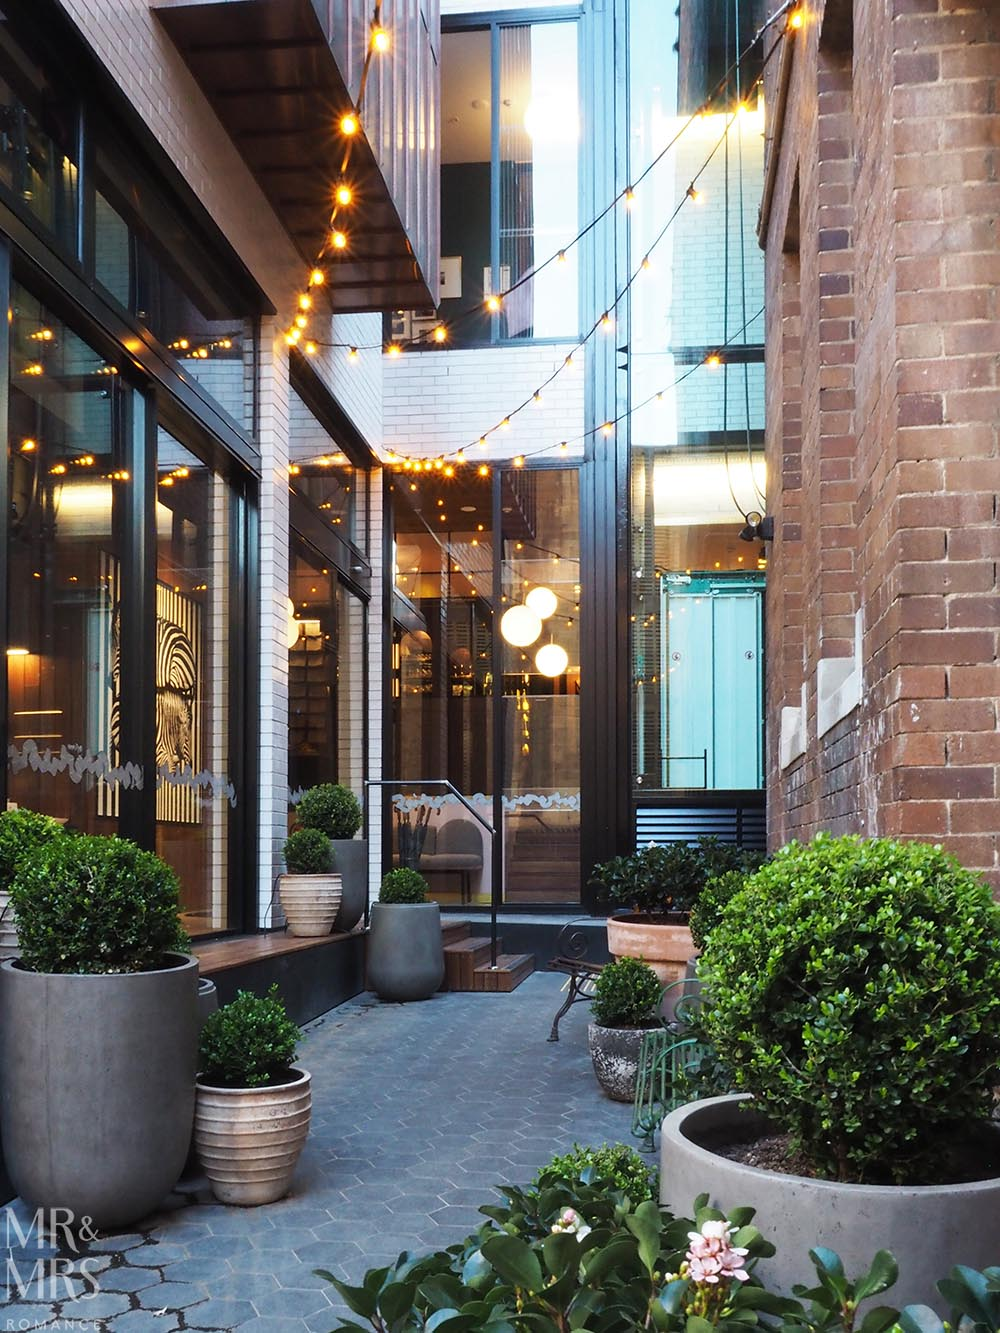 Romantic Sydney hotels - Hotels.com x Mr & Mrs Romance - Little Albion